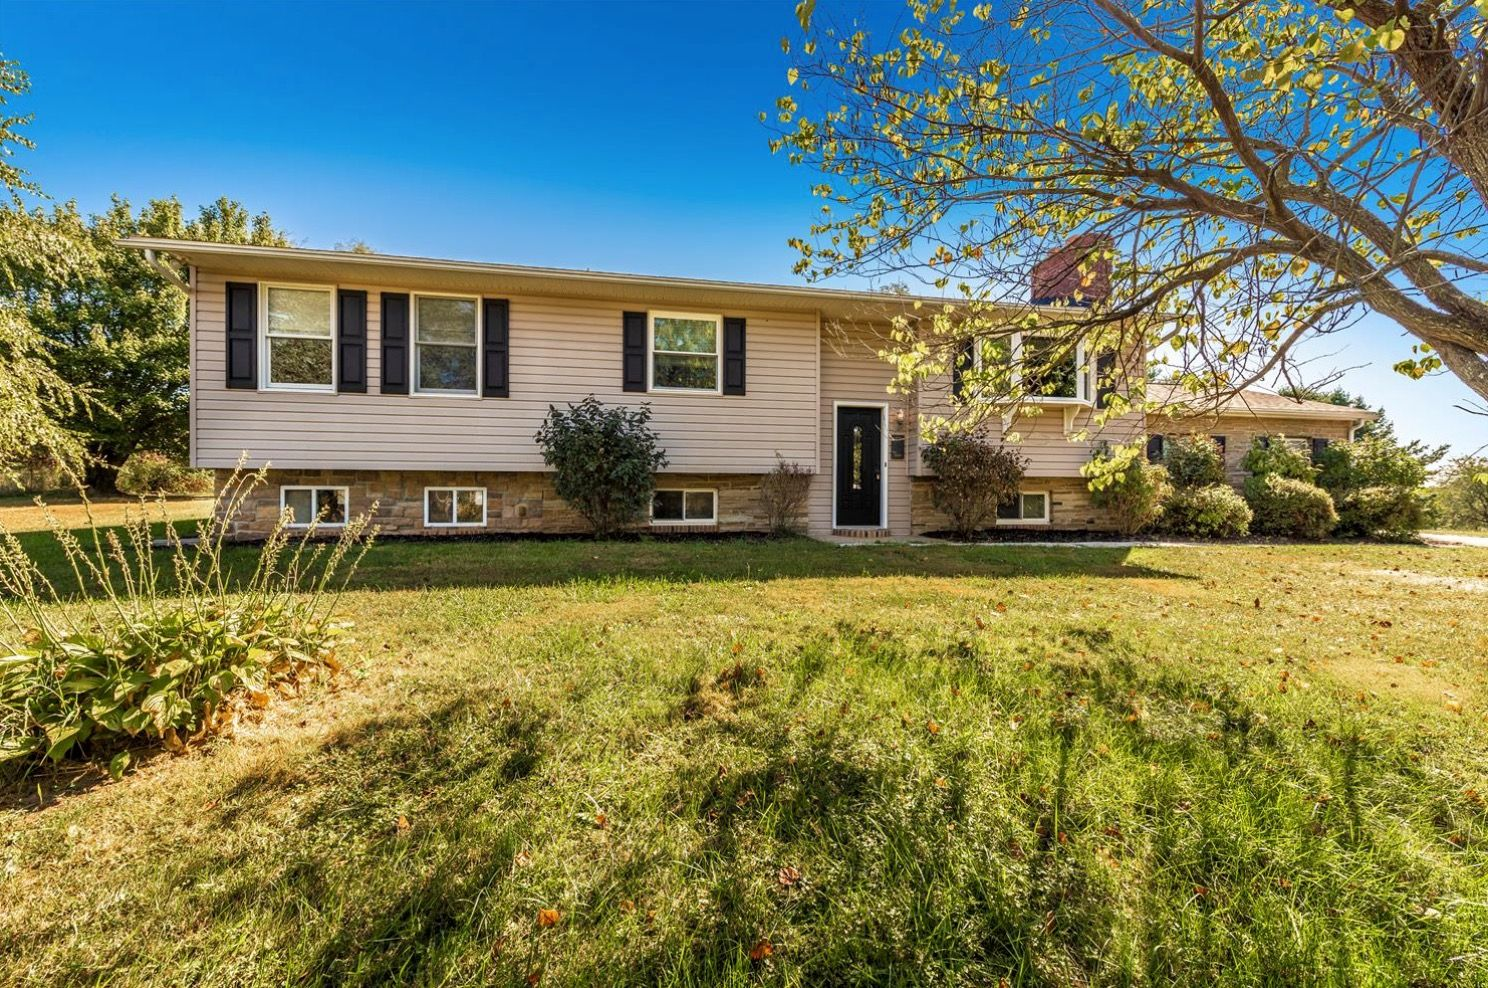 Nathalie Moffatt Of Long Foster Real Estate Offers 6555 Woodbine Road Woodbine Md 21797 New Price Come See Home Warranty Woodbine Morning Room Addition